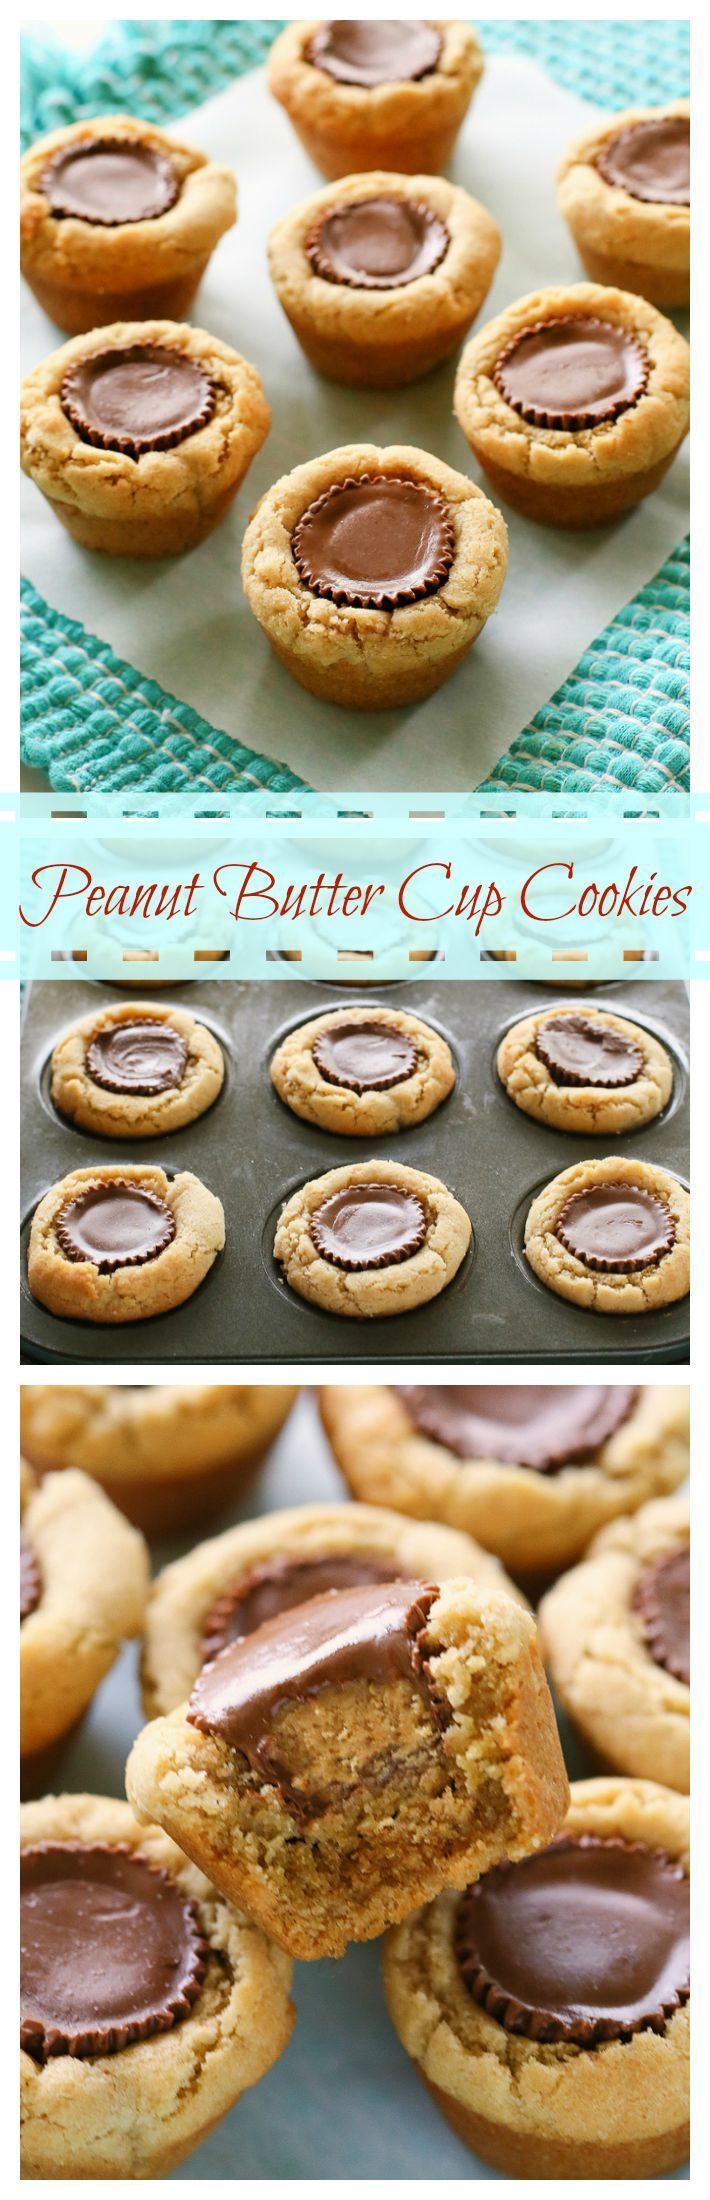 Peanut Butter Cup Cookies - a fool proof recipe that is always a hit. http://the-girl-who-ate-everything.com